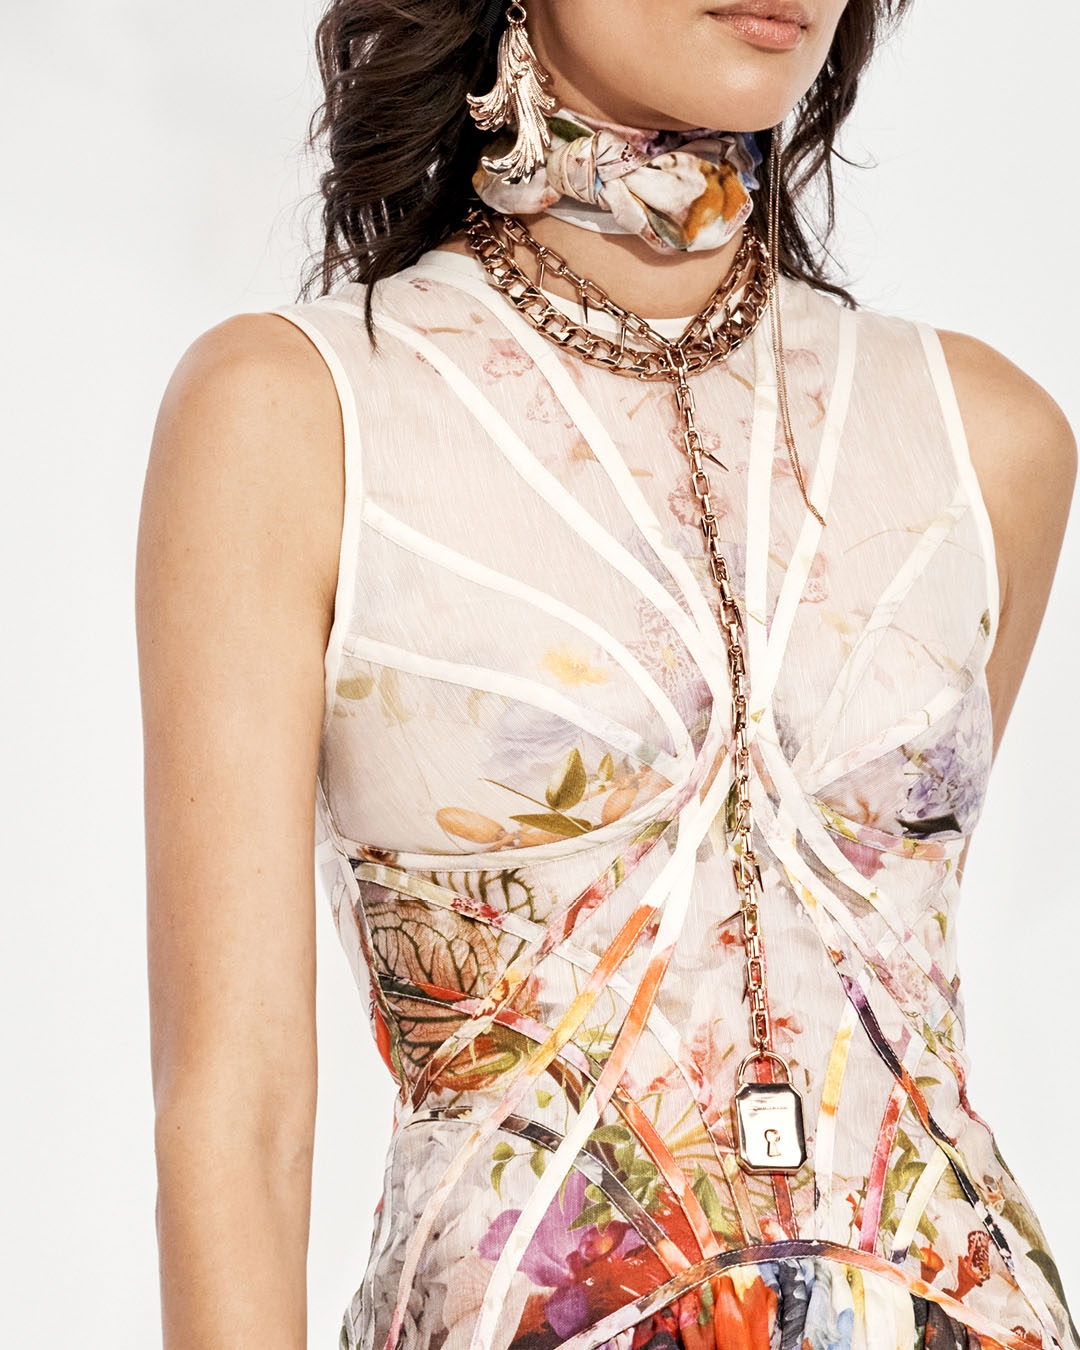 IN THE DETAIL: LOOK 40 SPRING READY TO WEAR 2022